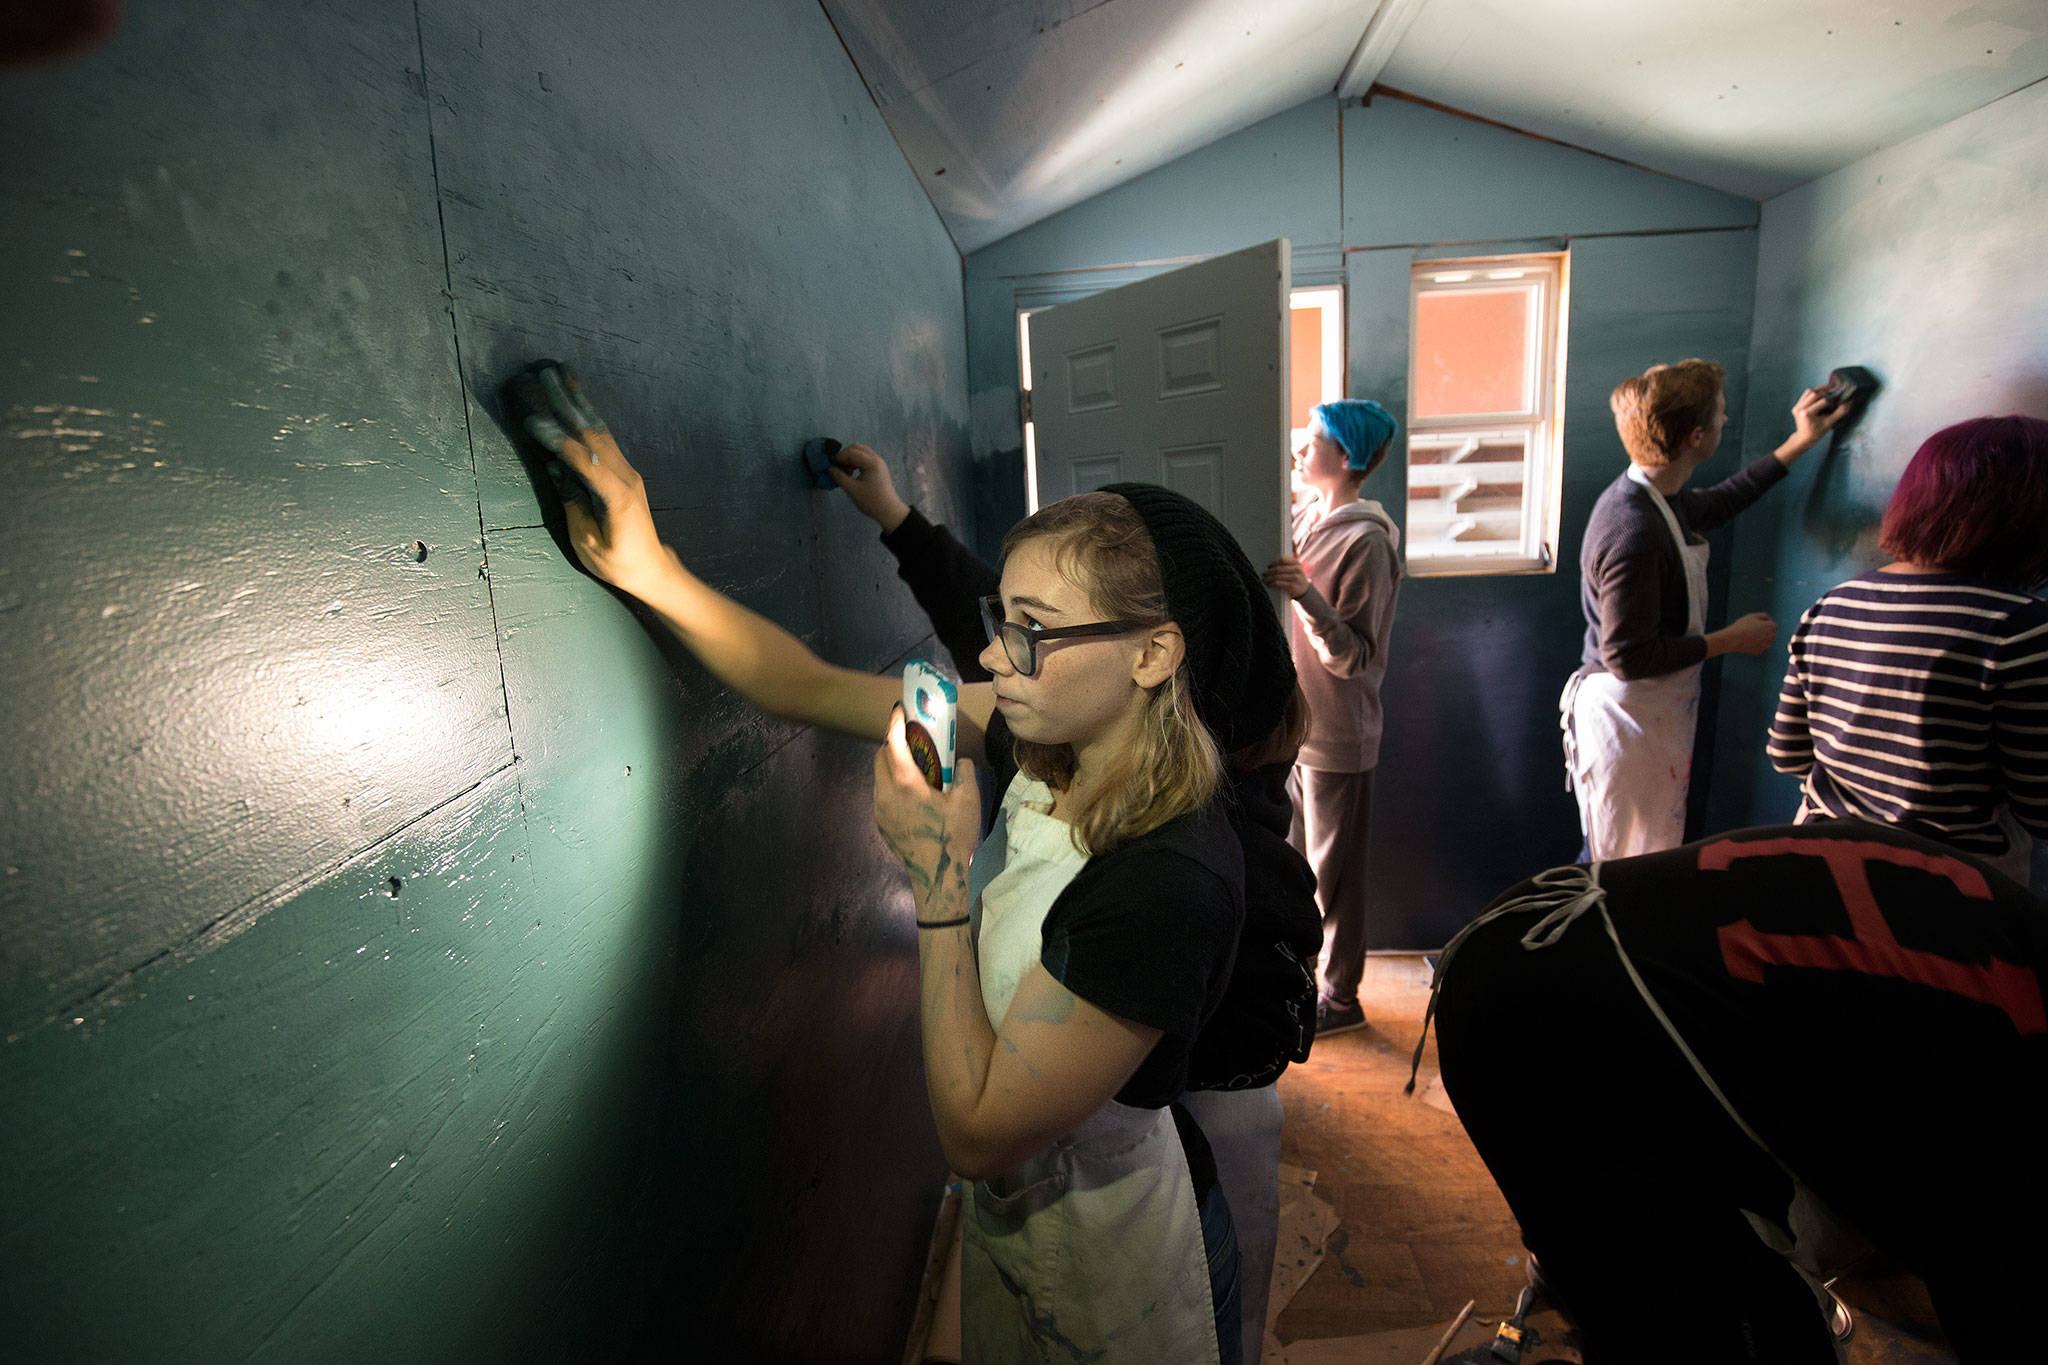 Snohomish High School student Hailey Knie uses her cellphone Monday to light up the wall where she is blending colors of paint in a tiny home at the school. The home was built by classmates and painted by students from the Art Honor Society, and will be used to house the homeless in Seattle. (Andy Bronson / The Herald)